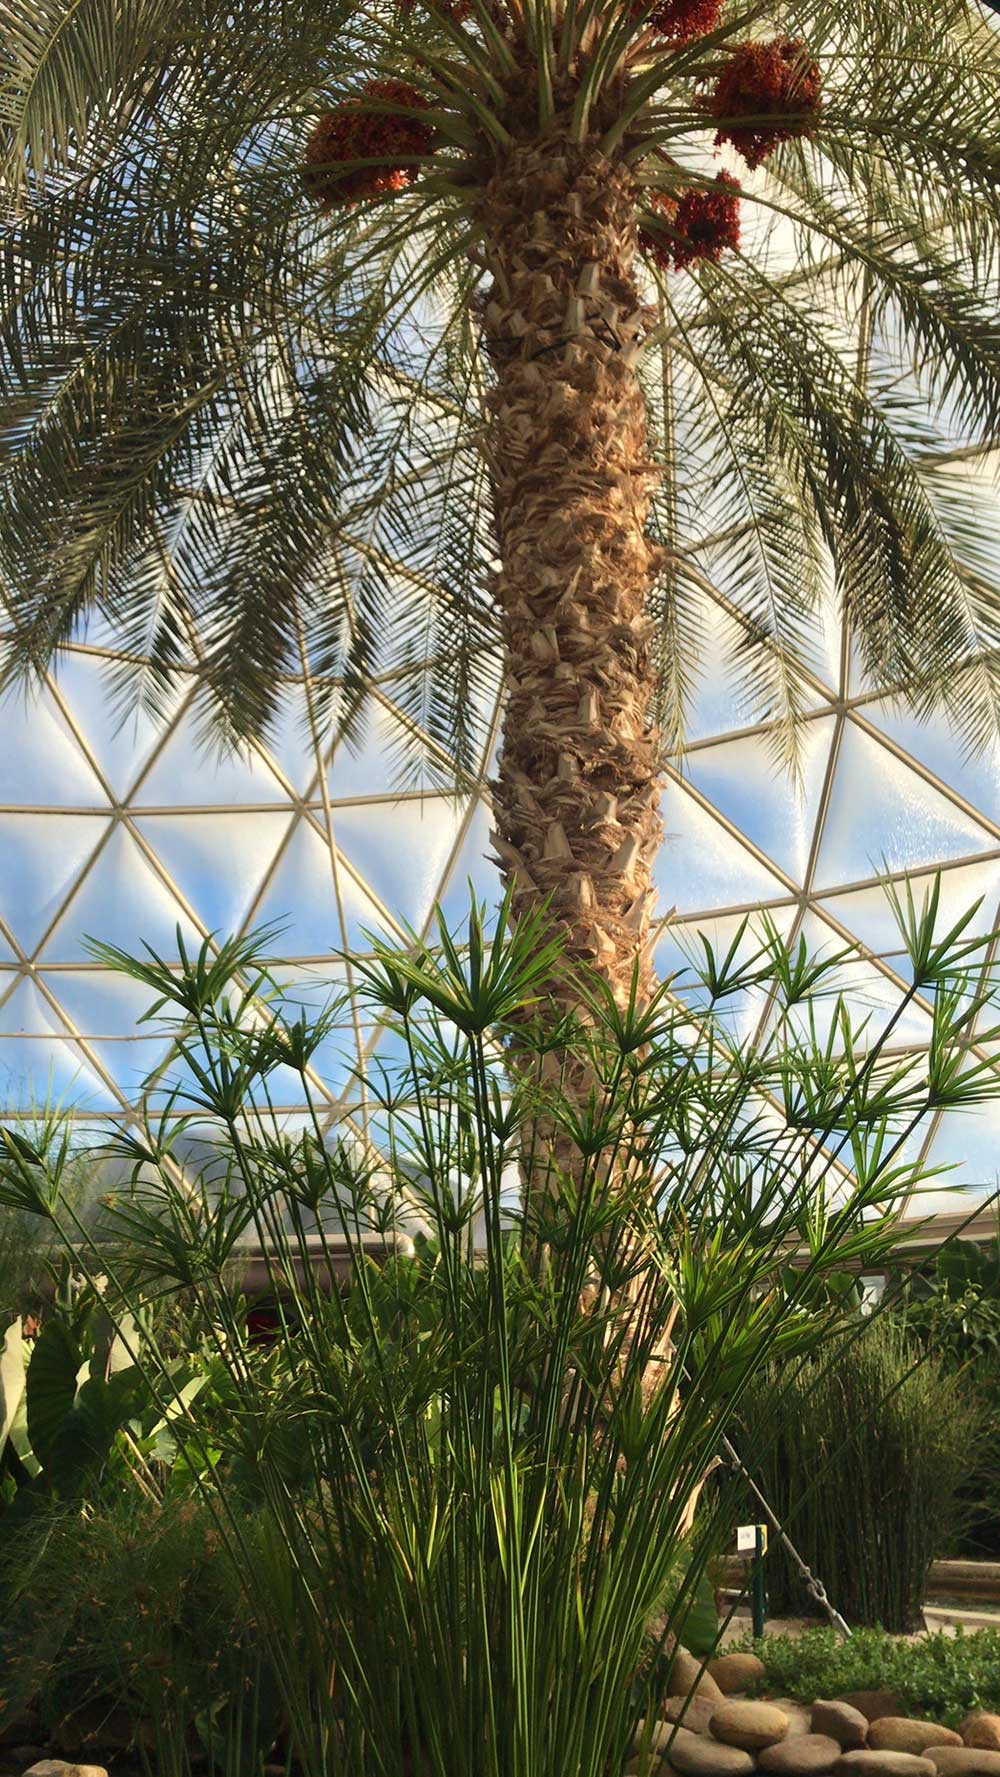 The Frog Family's Top 5 Epcot Hidden Gems